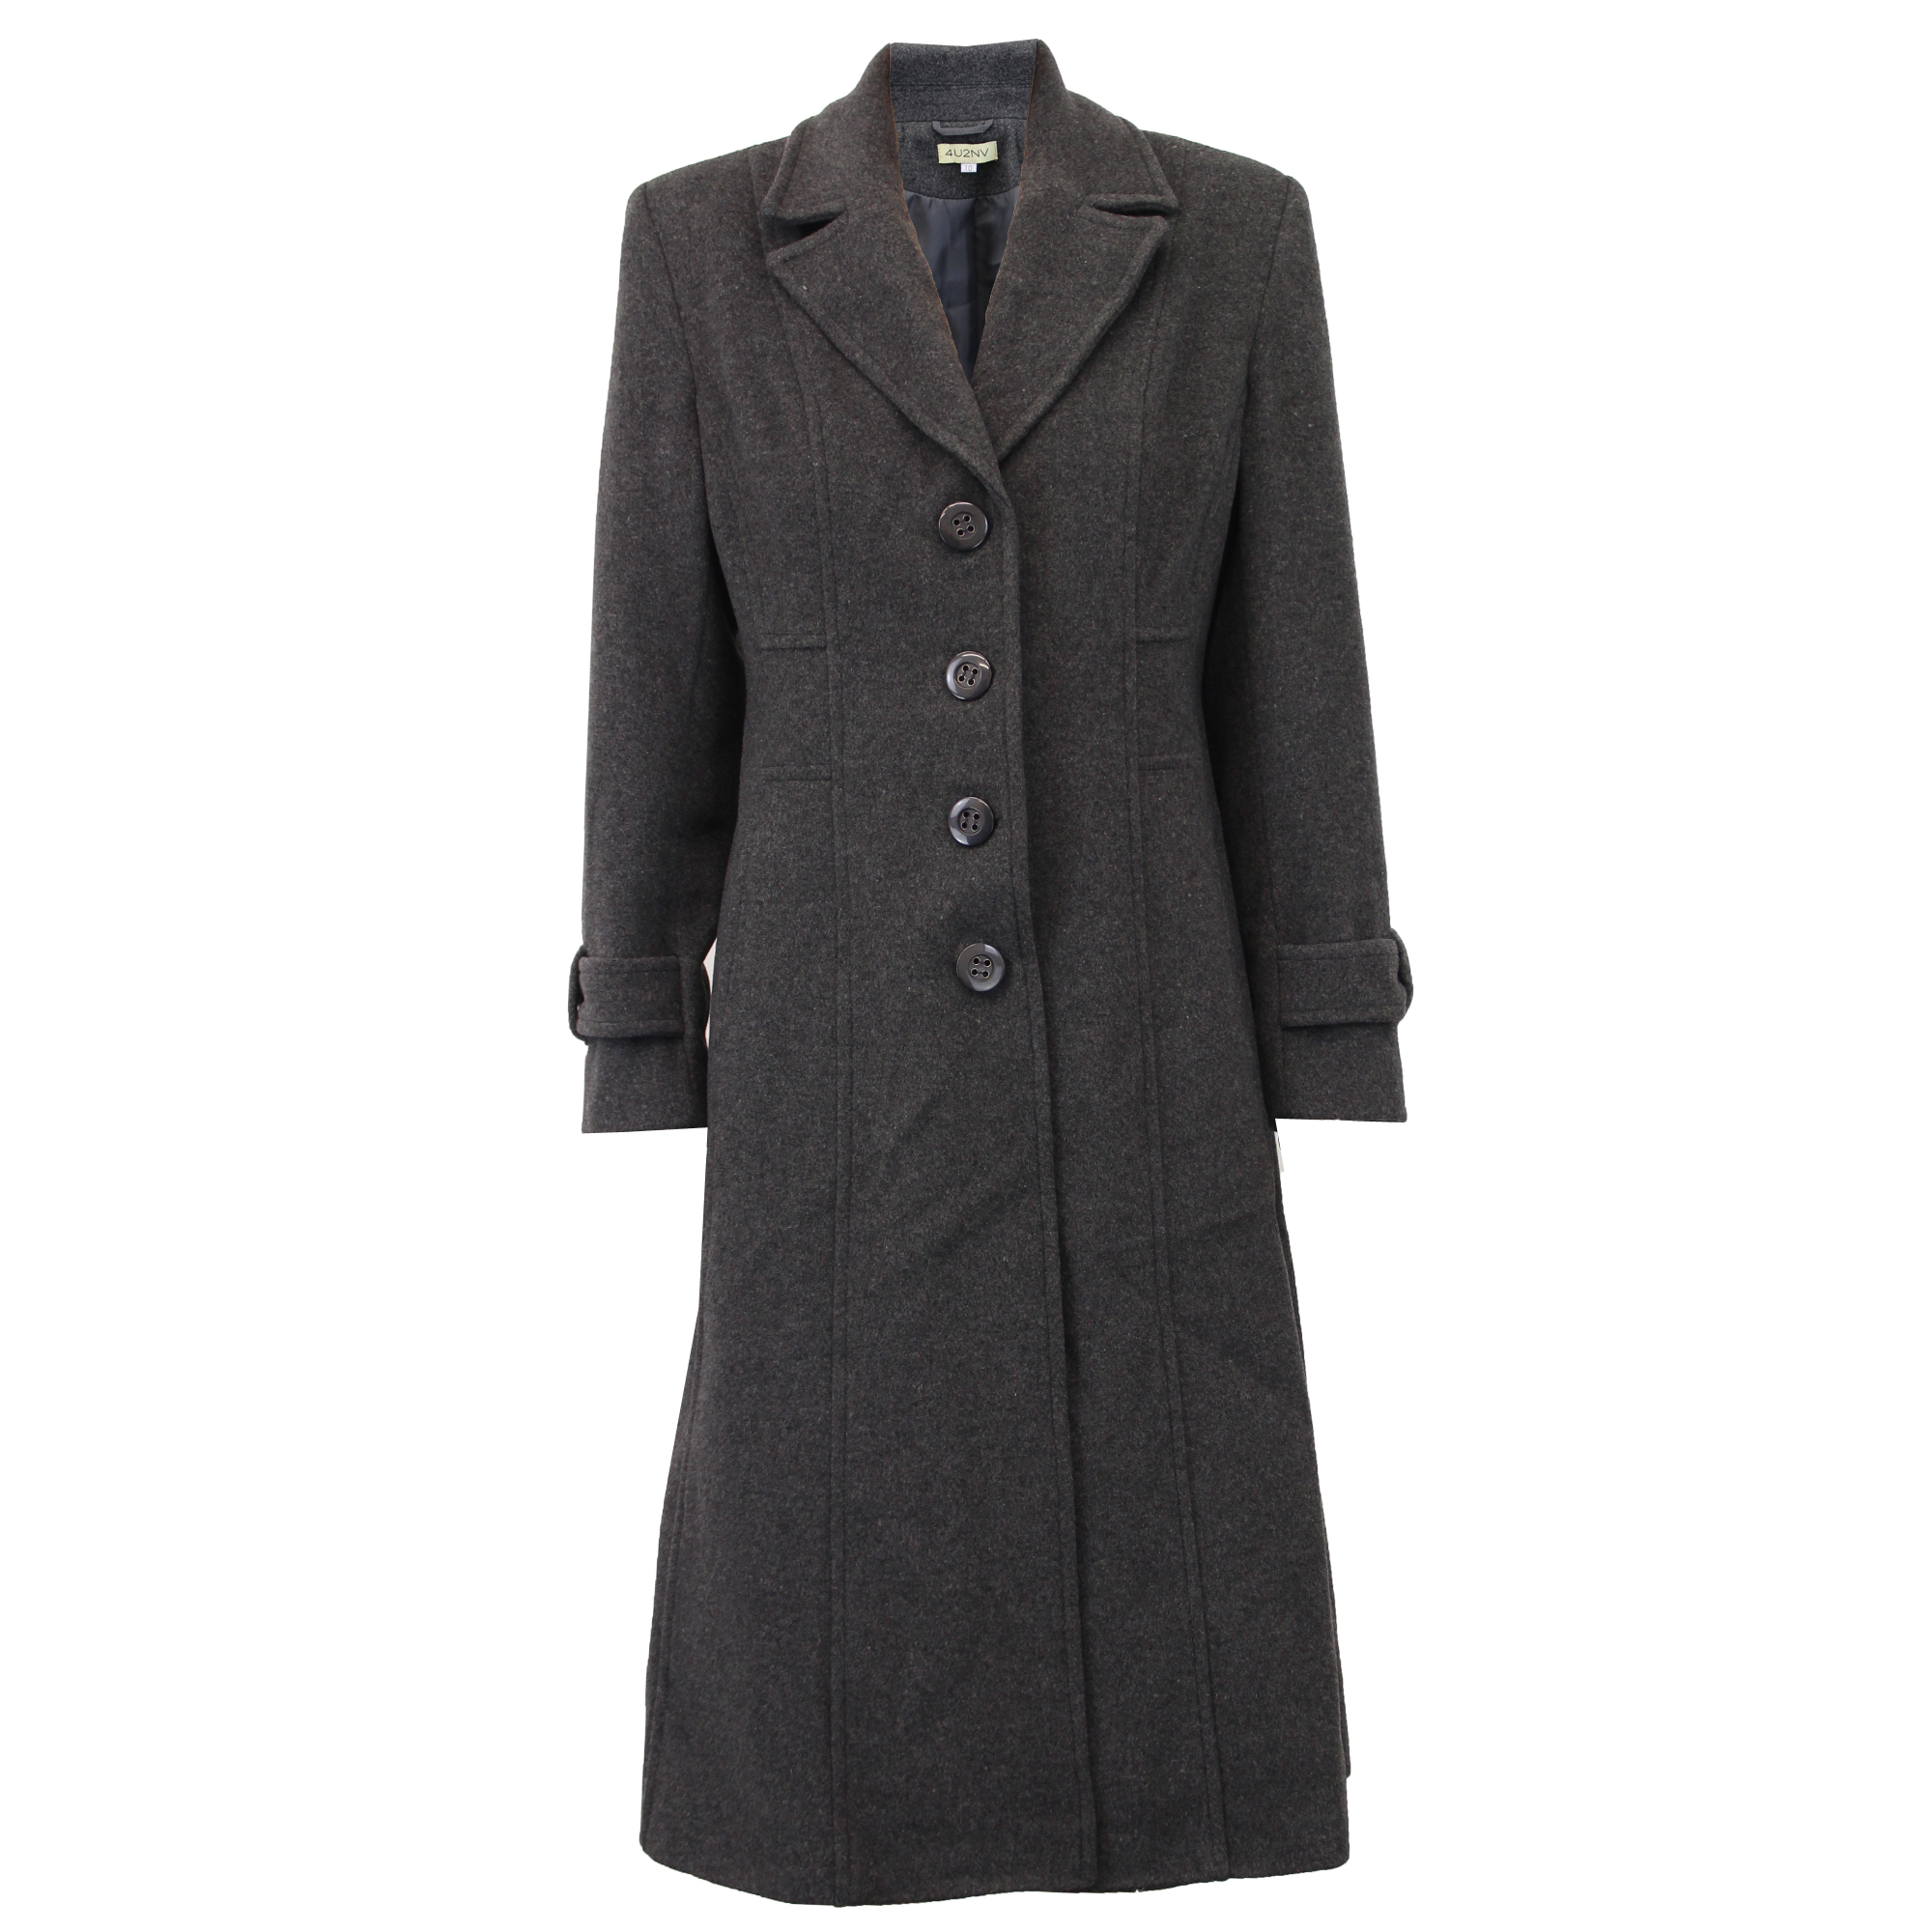 Ladies-Wool-Cashmere-Coat-Women-Jacket-Outerwear-Trench-Overcoat-Winter-Lined thumbnail 48